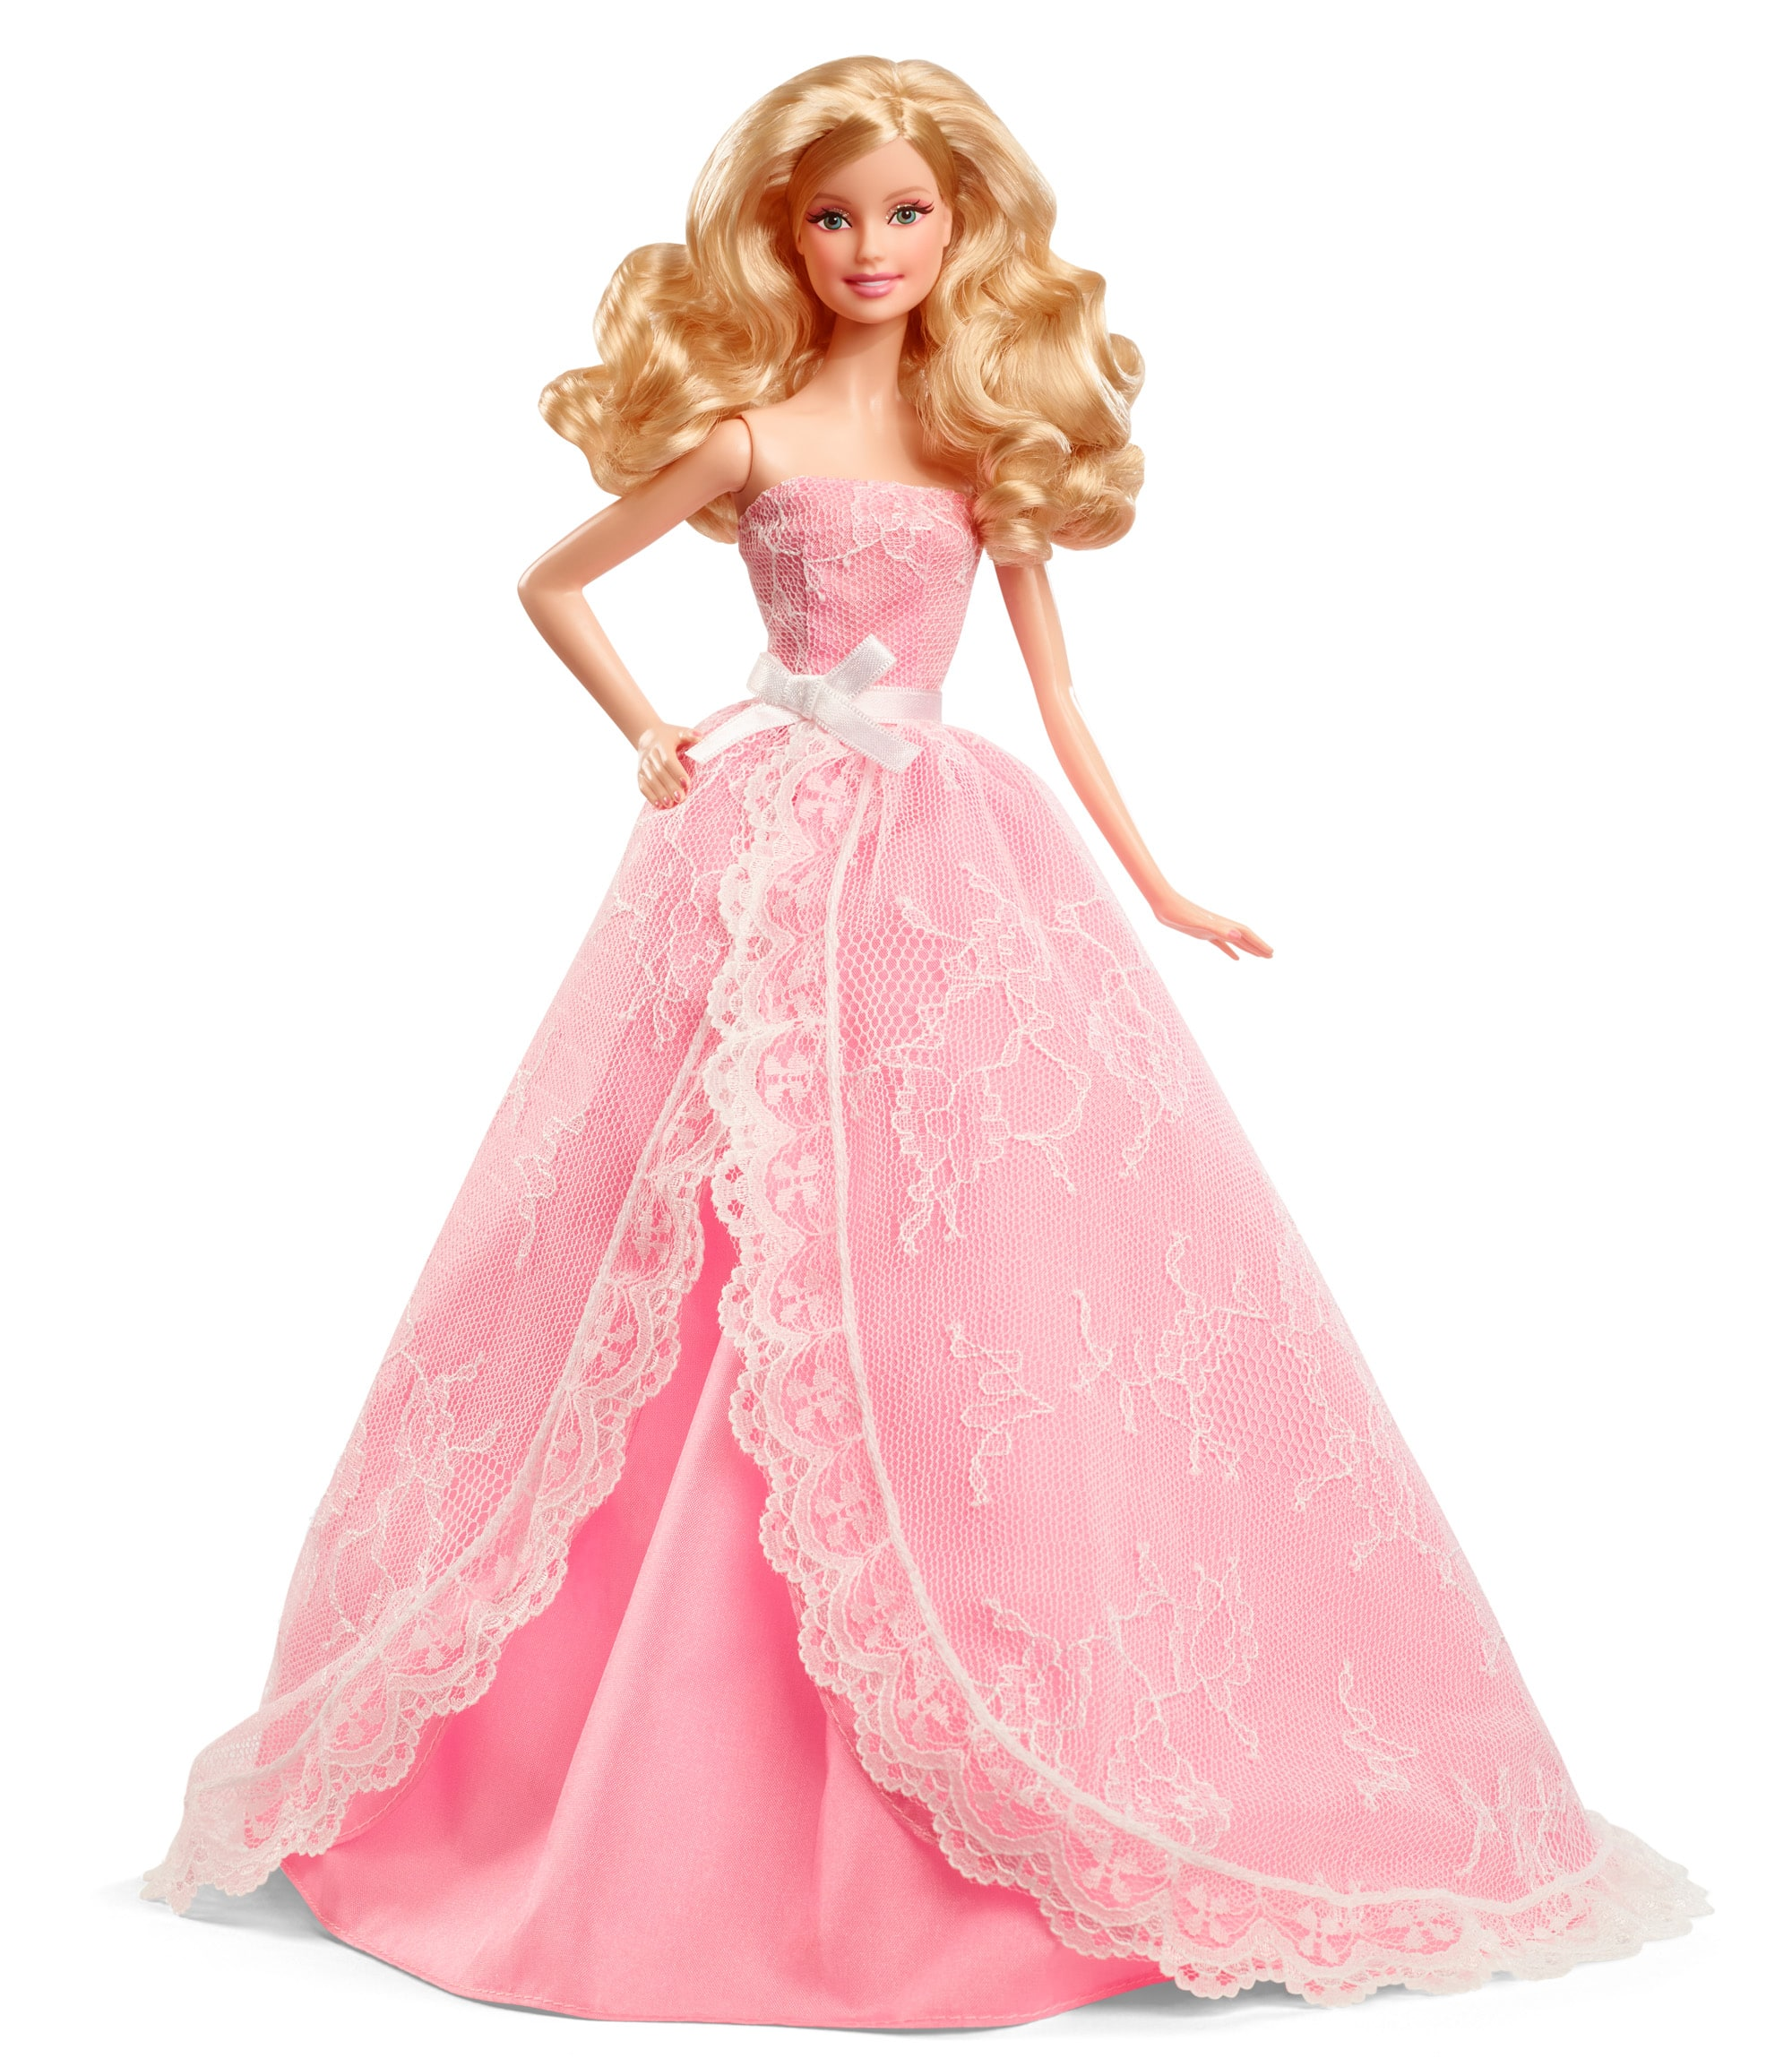 Barbie Collector 2016 Birthday Wishes Doll for $14.98 at Amazon or 2015 model for $14.98 at Target